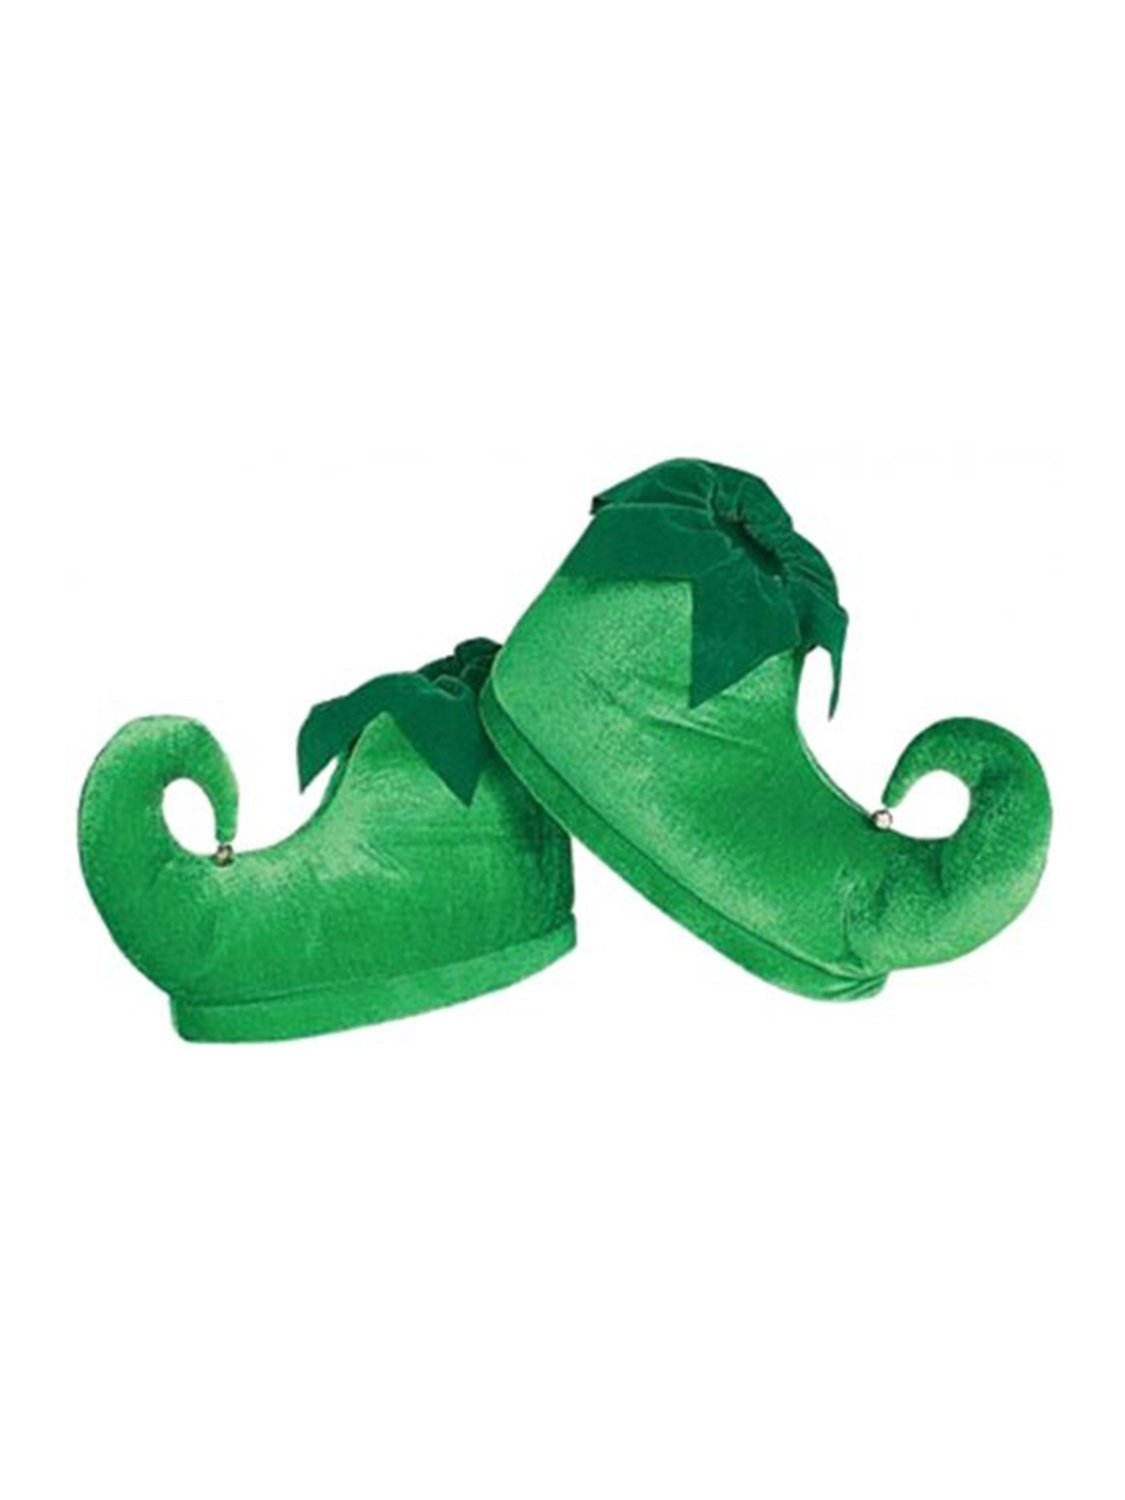 Rubie's Deluxe Elf Shoes, Green, One Size